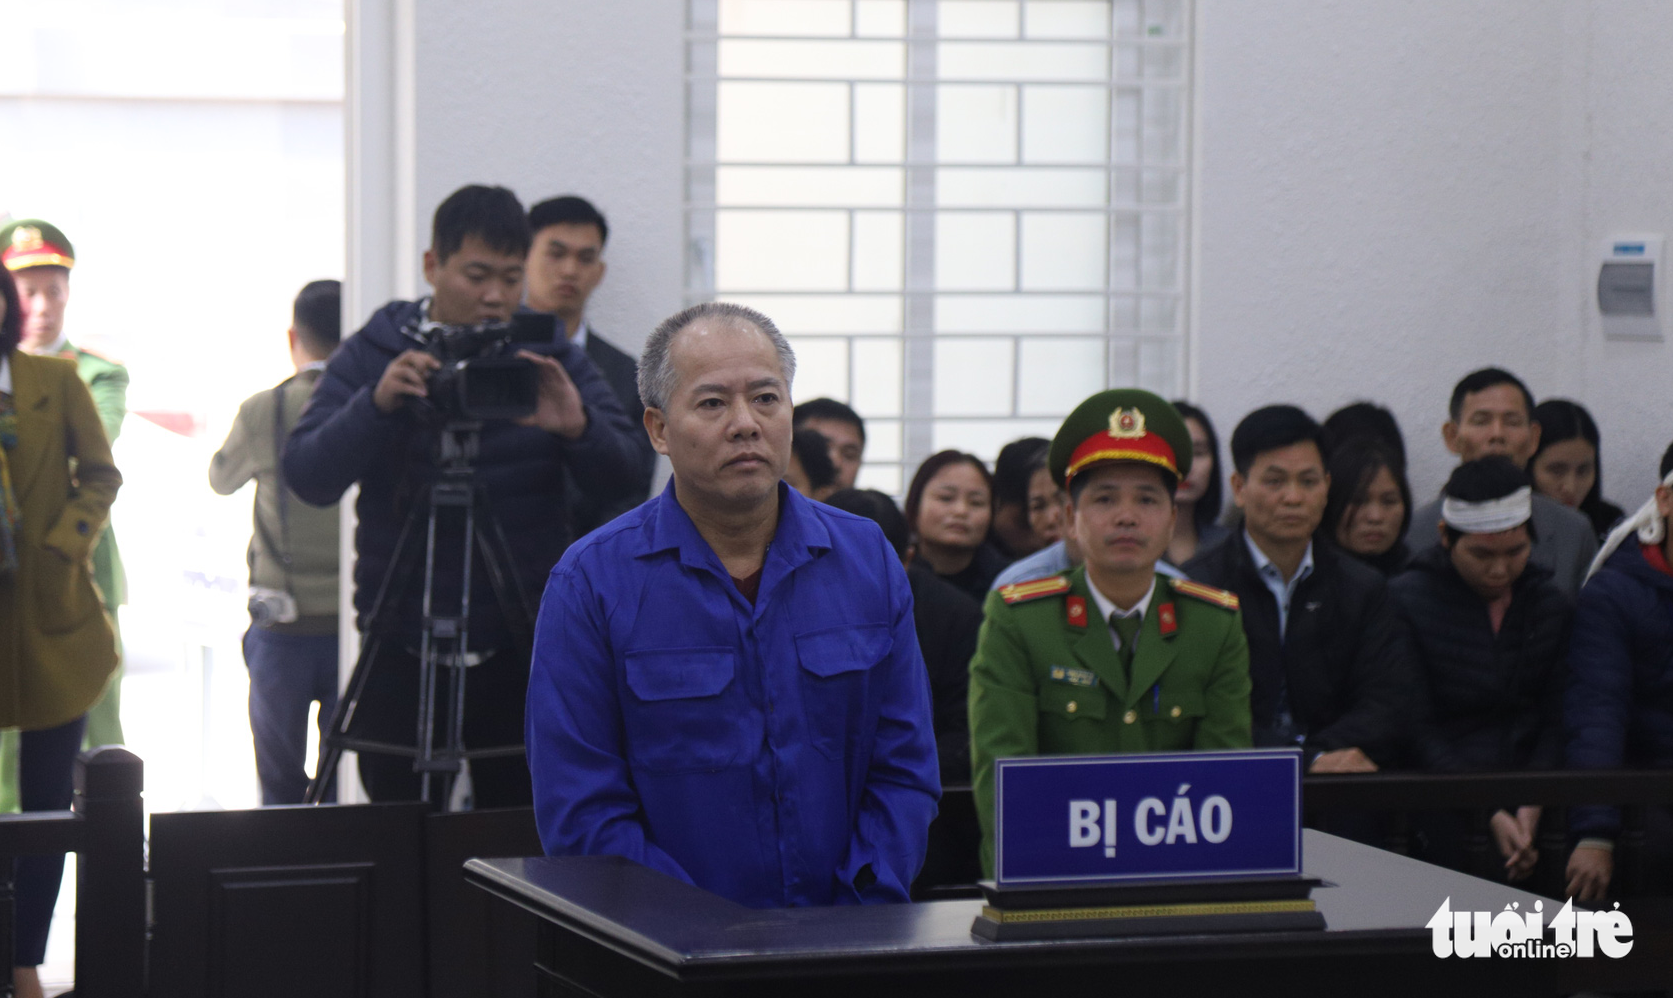 Hanoi man sentenced to death for murdering brother's family over land dispute